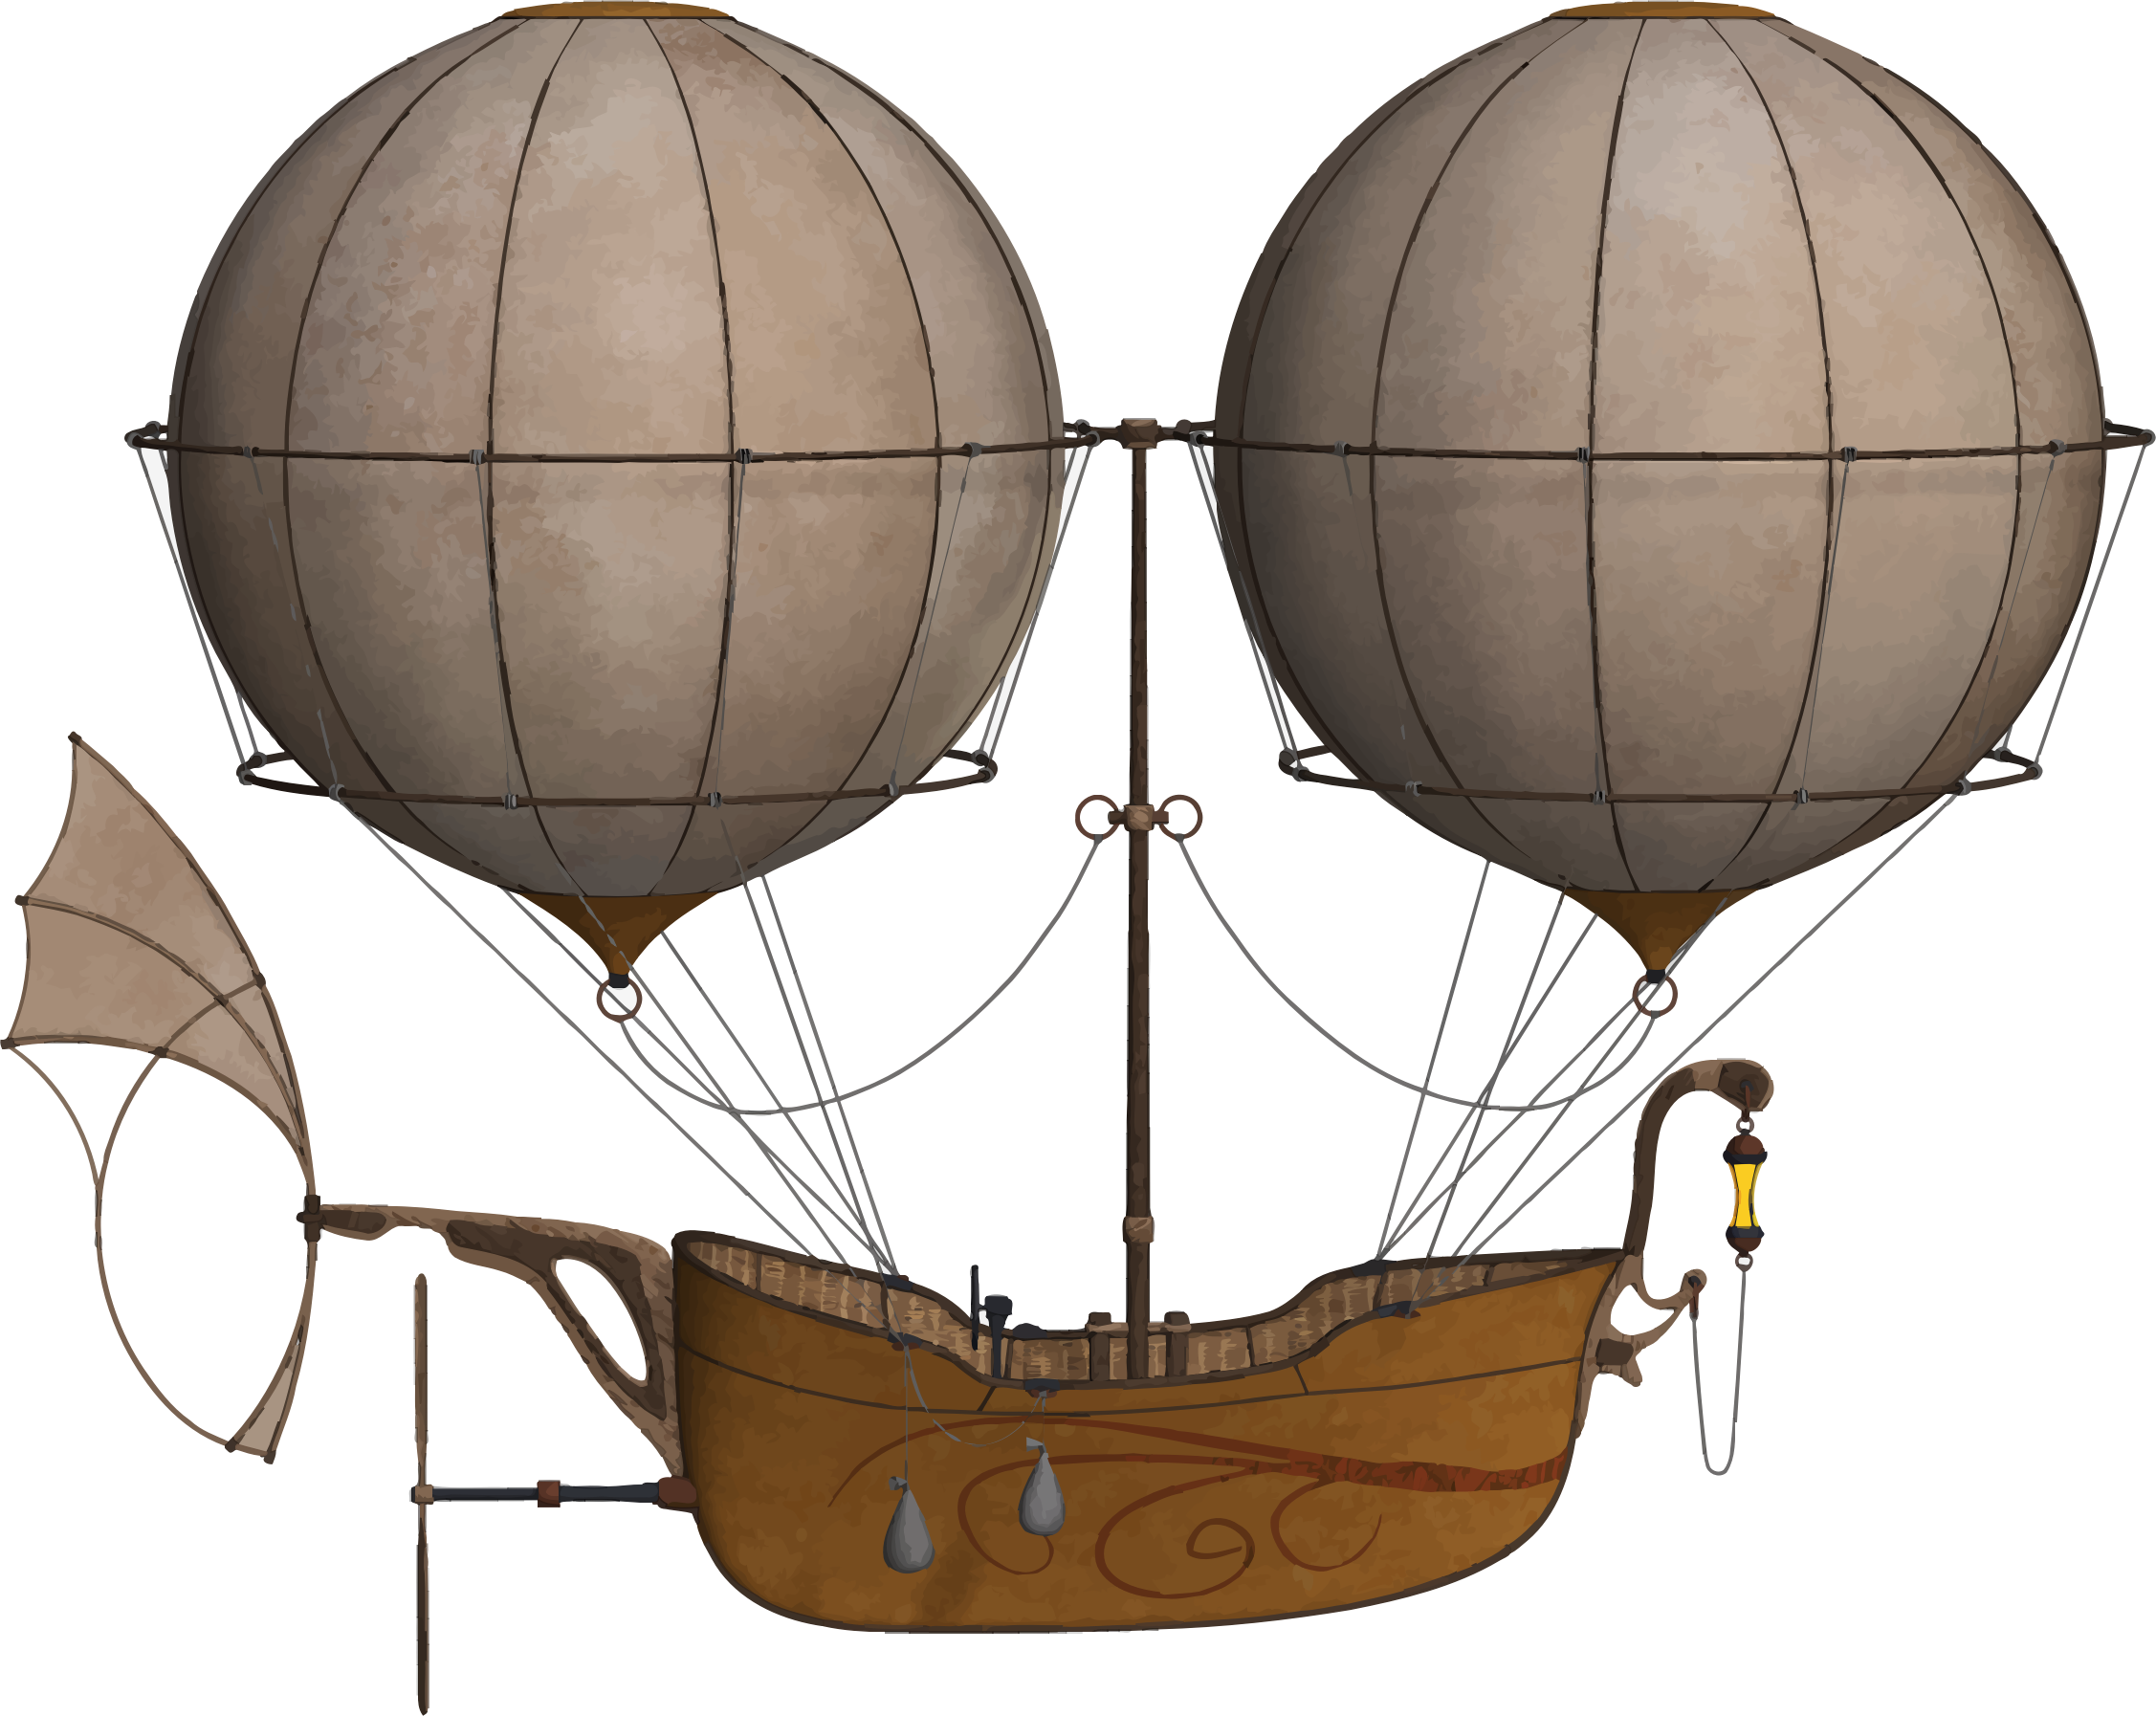 Air ship big image. Clipart balloon vintage